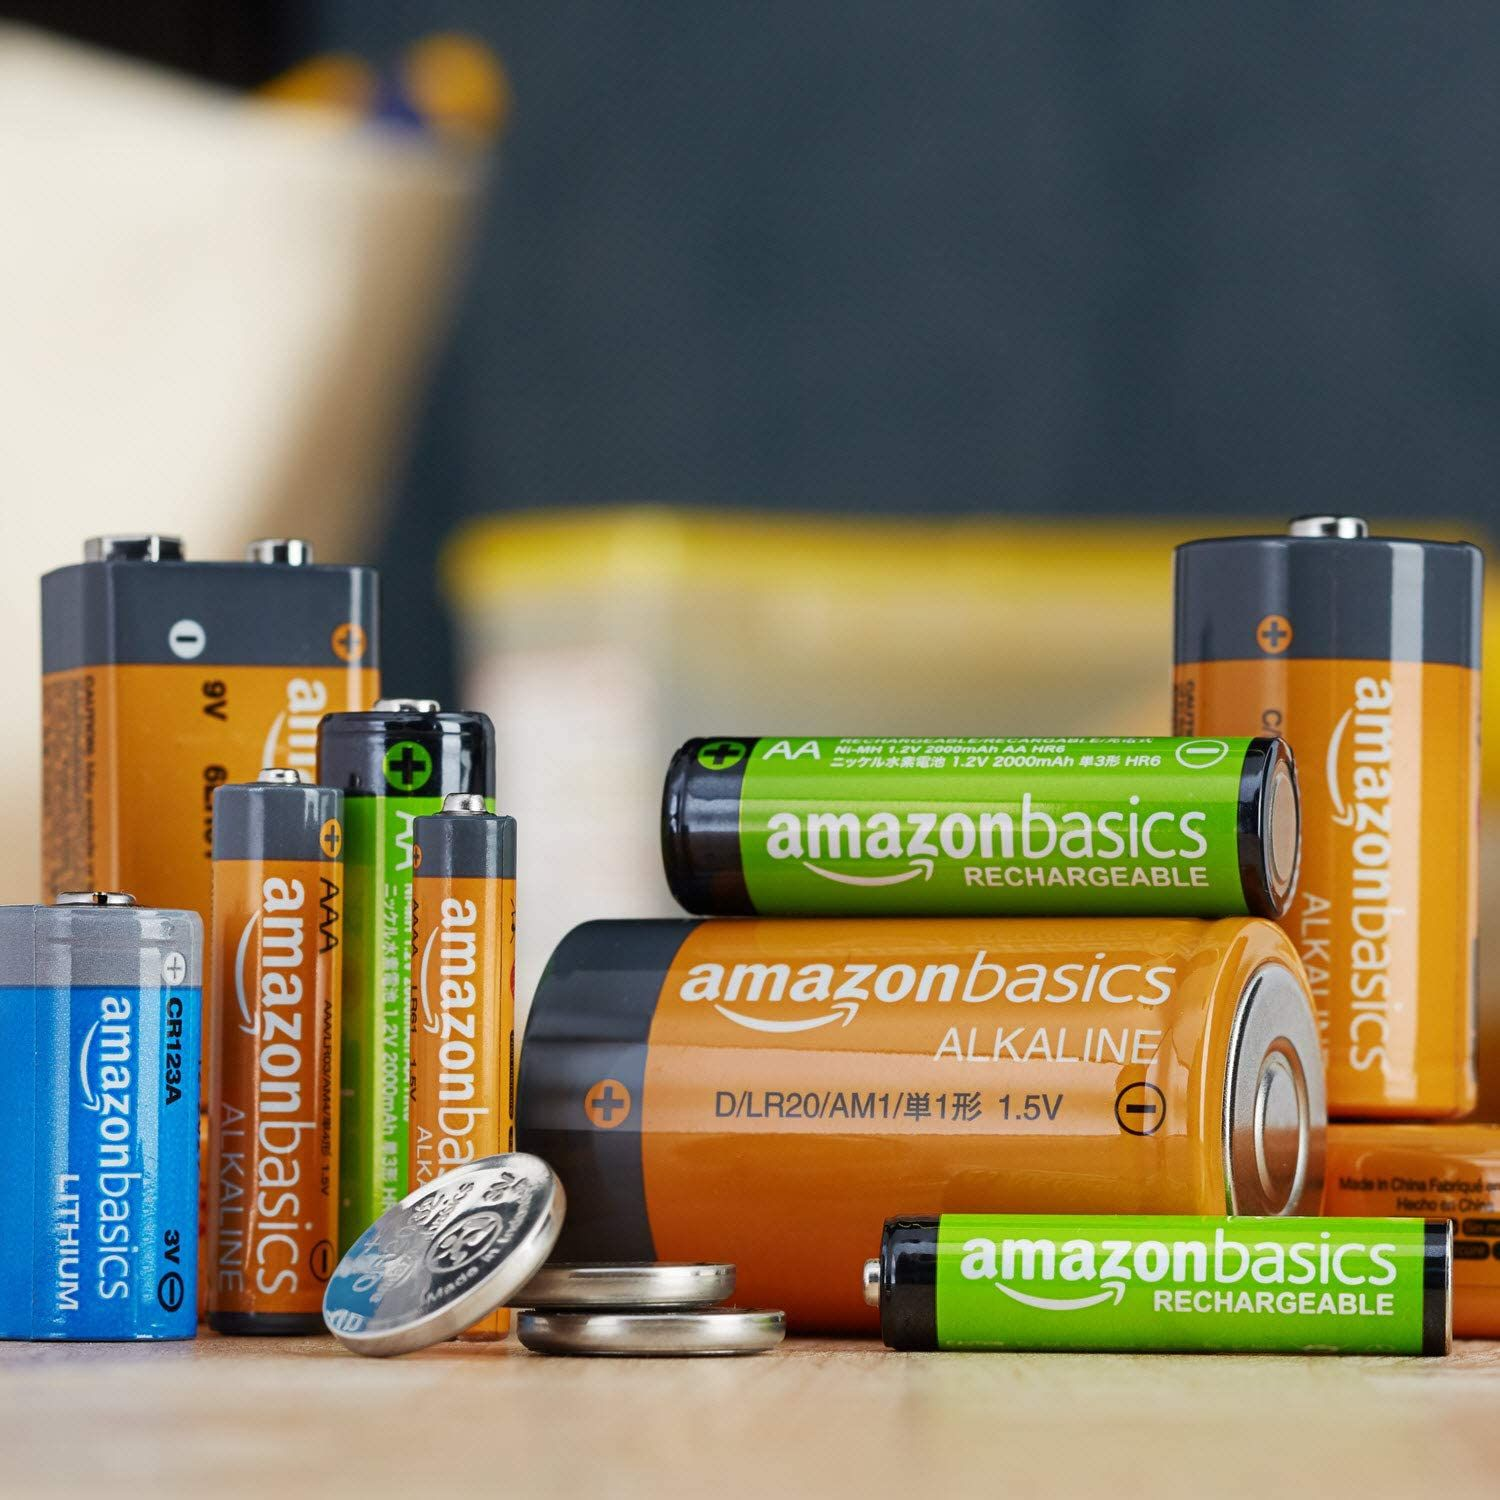 Pin By Our Shopping Store On Batteries Chargers Rechargeable Batteries Recharge Batteries